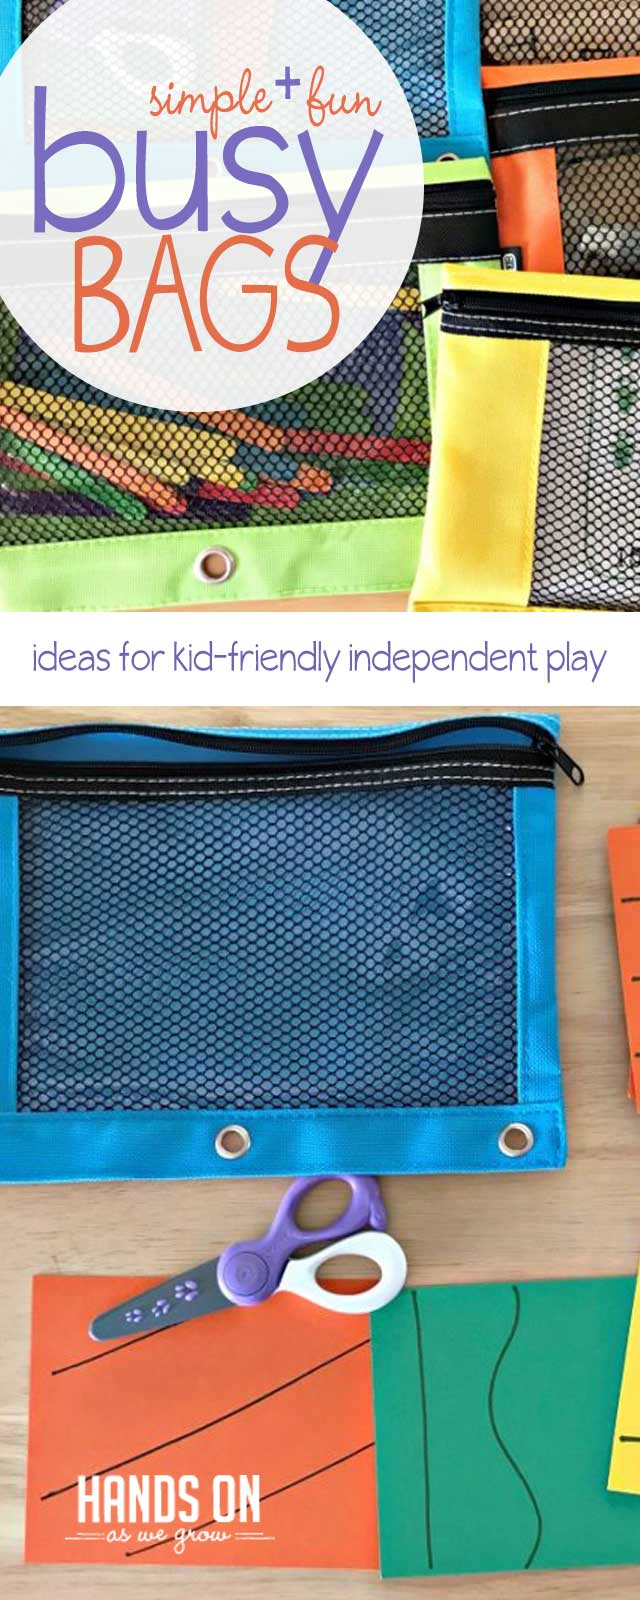 Make independent play a snap with super simple busy bags your kids will love! Learn exactly how to DIY your own busy bags with this free tutorial.